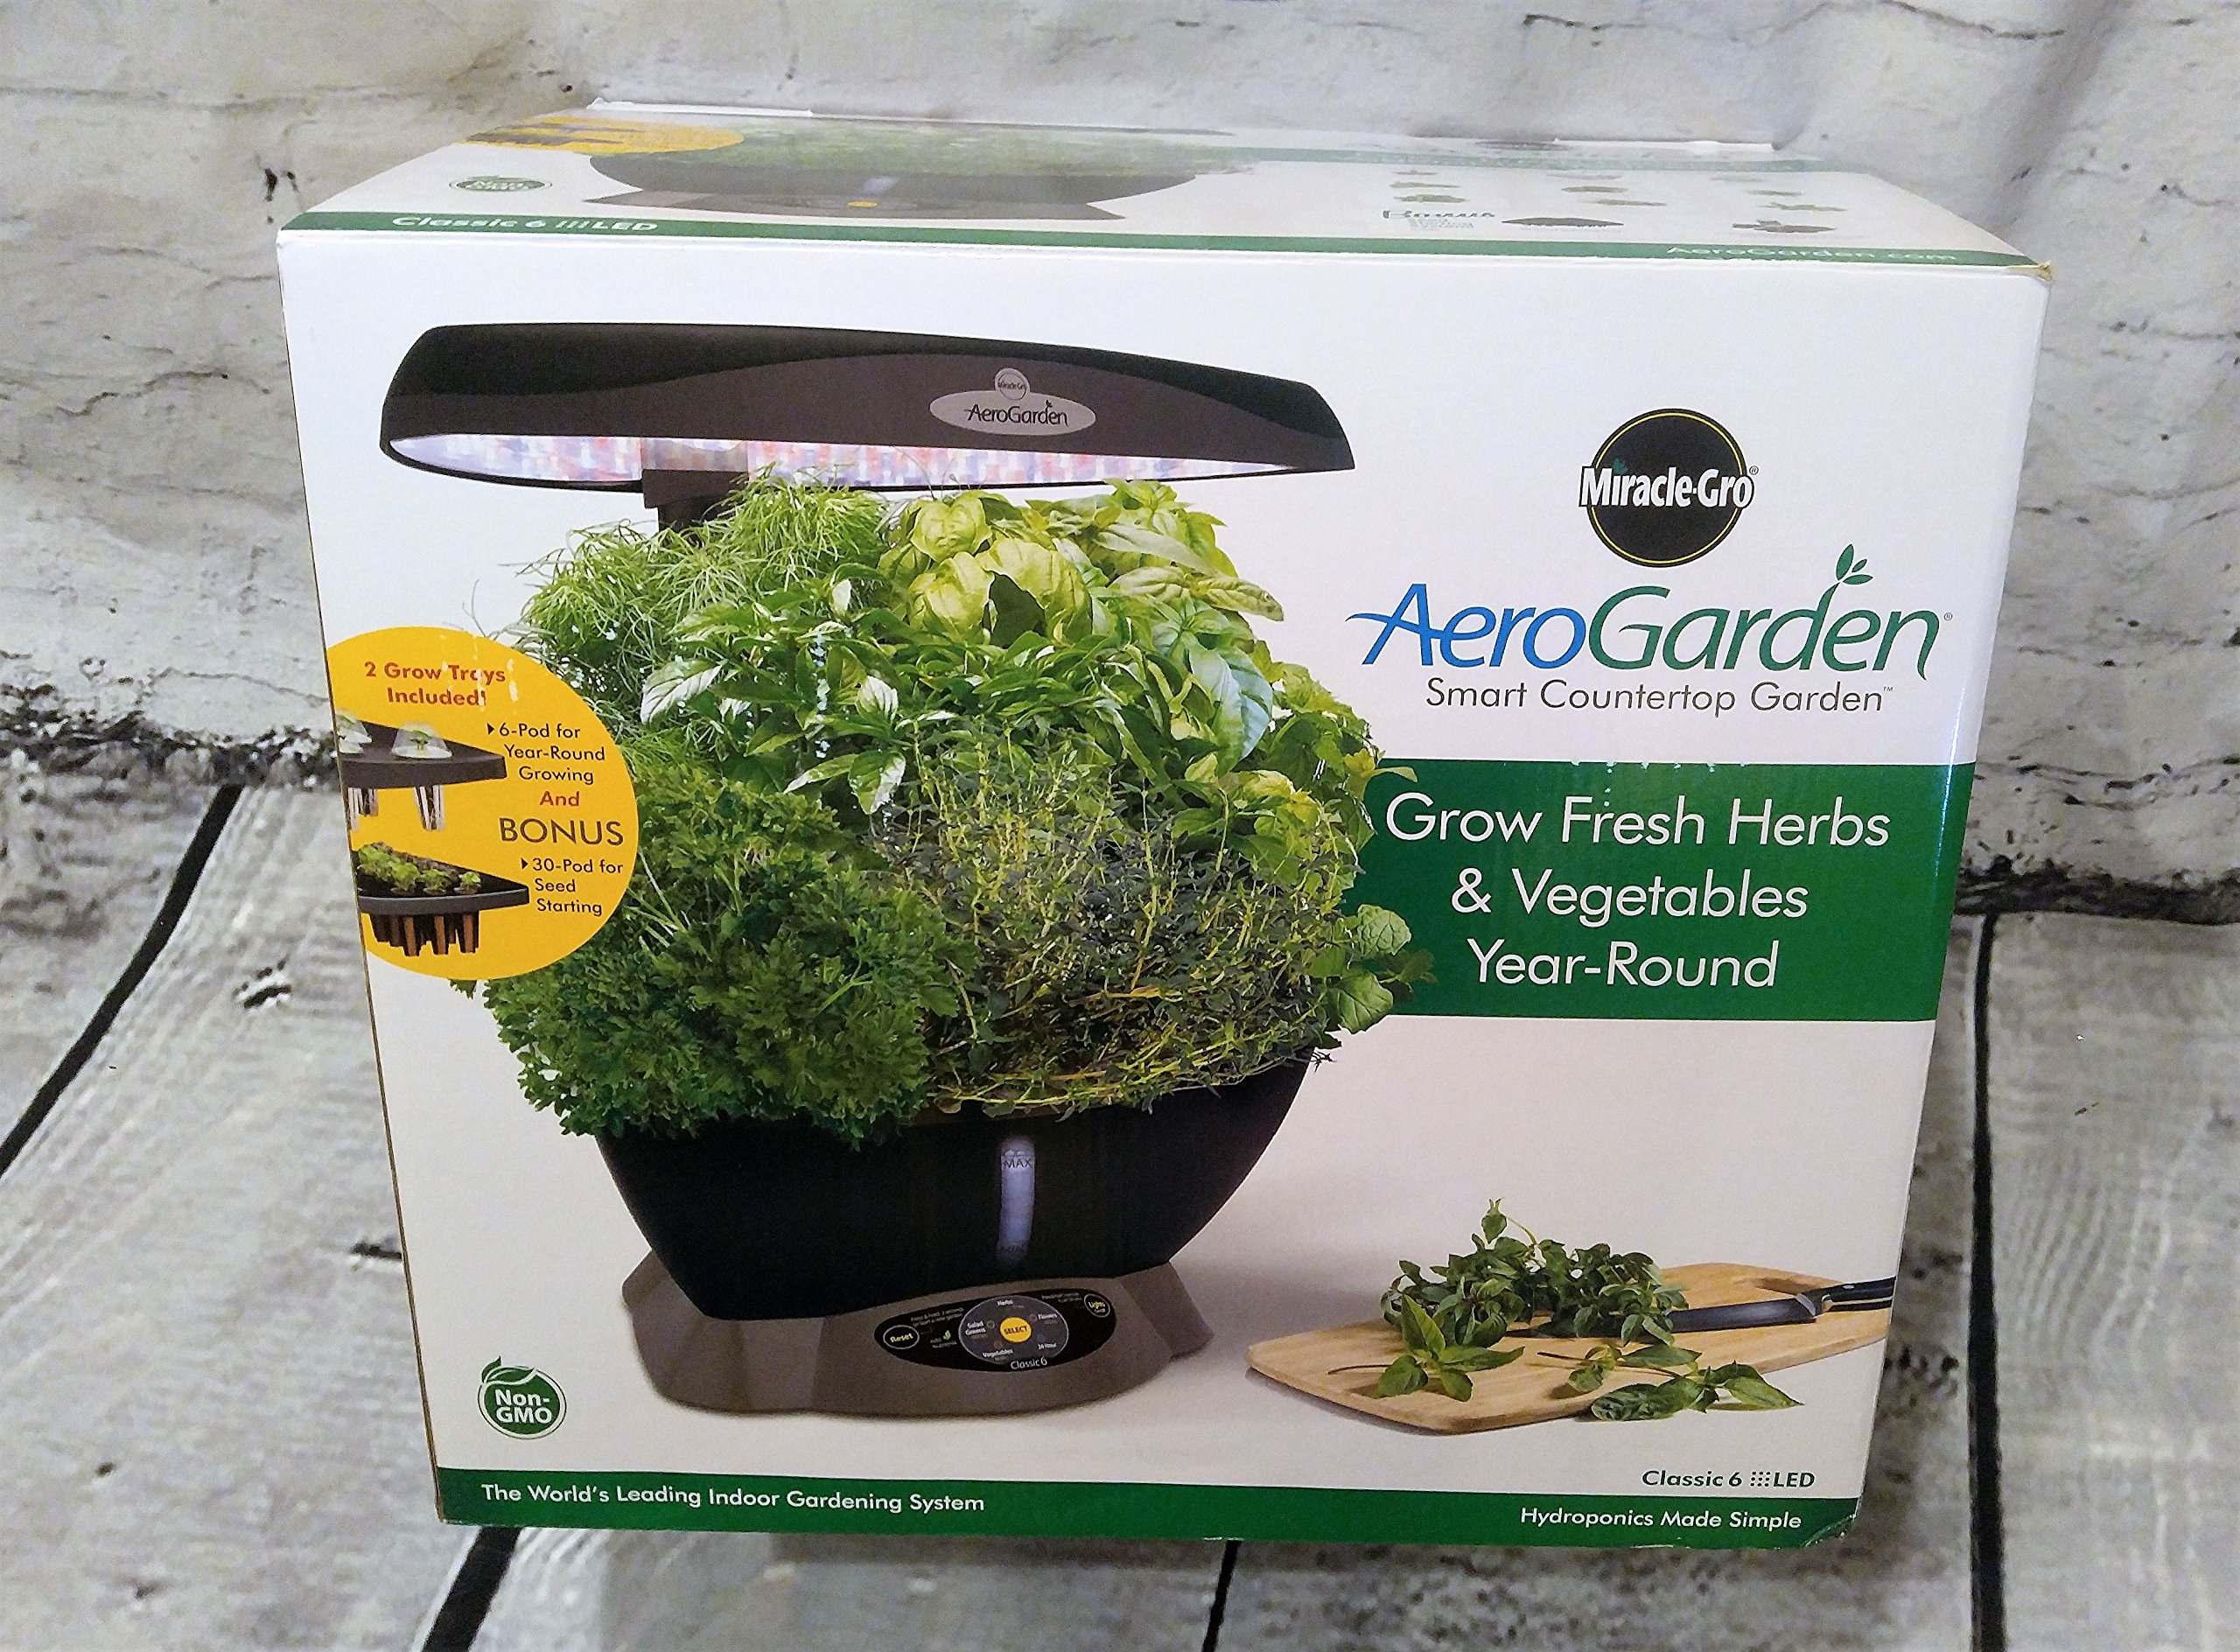 Aerogarden Miracle-Gro Classic 6 with Gourmet Herb Kit and Bonus Seed Starting System Second Tray by Aerogarden Smart Countertop Garden